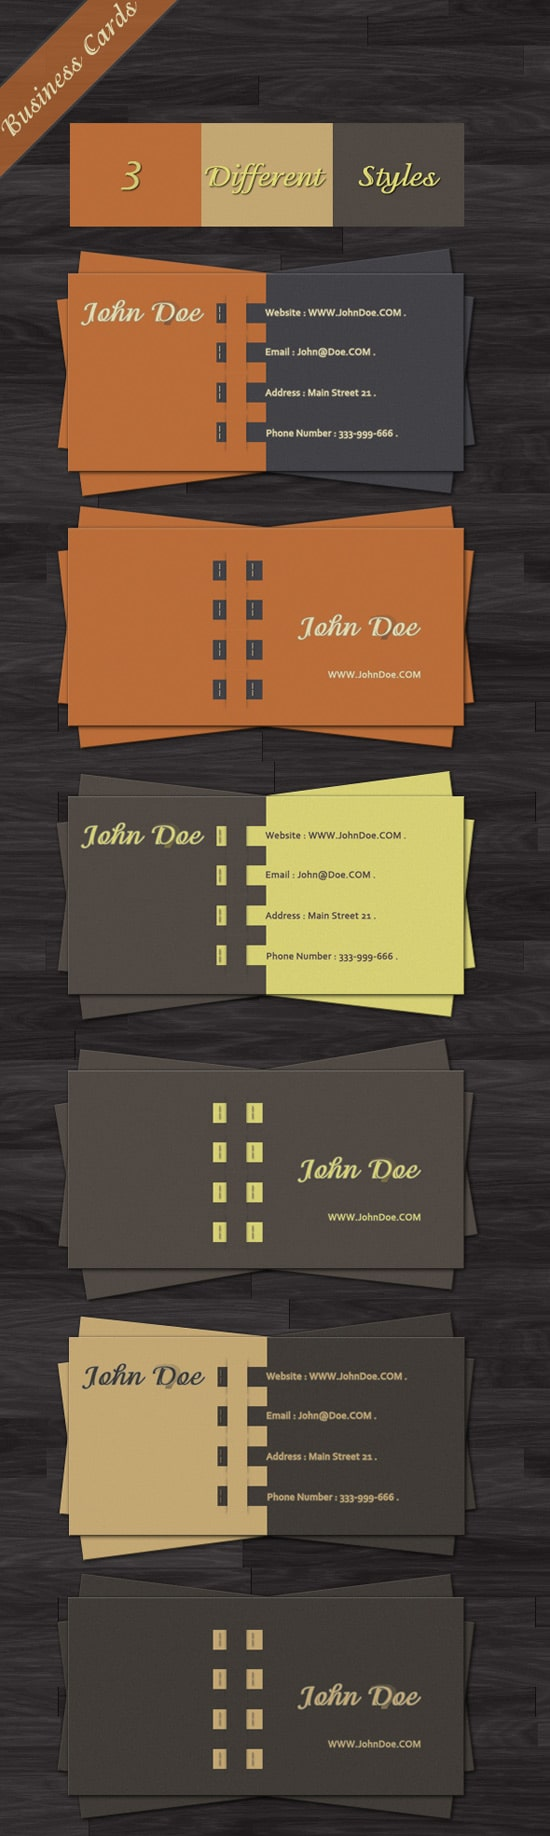 100 free business card templates designrfix business is business free psd vector business card wajeb